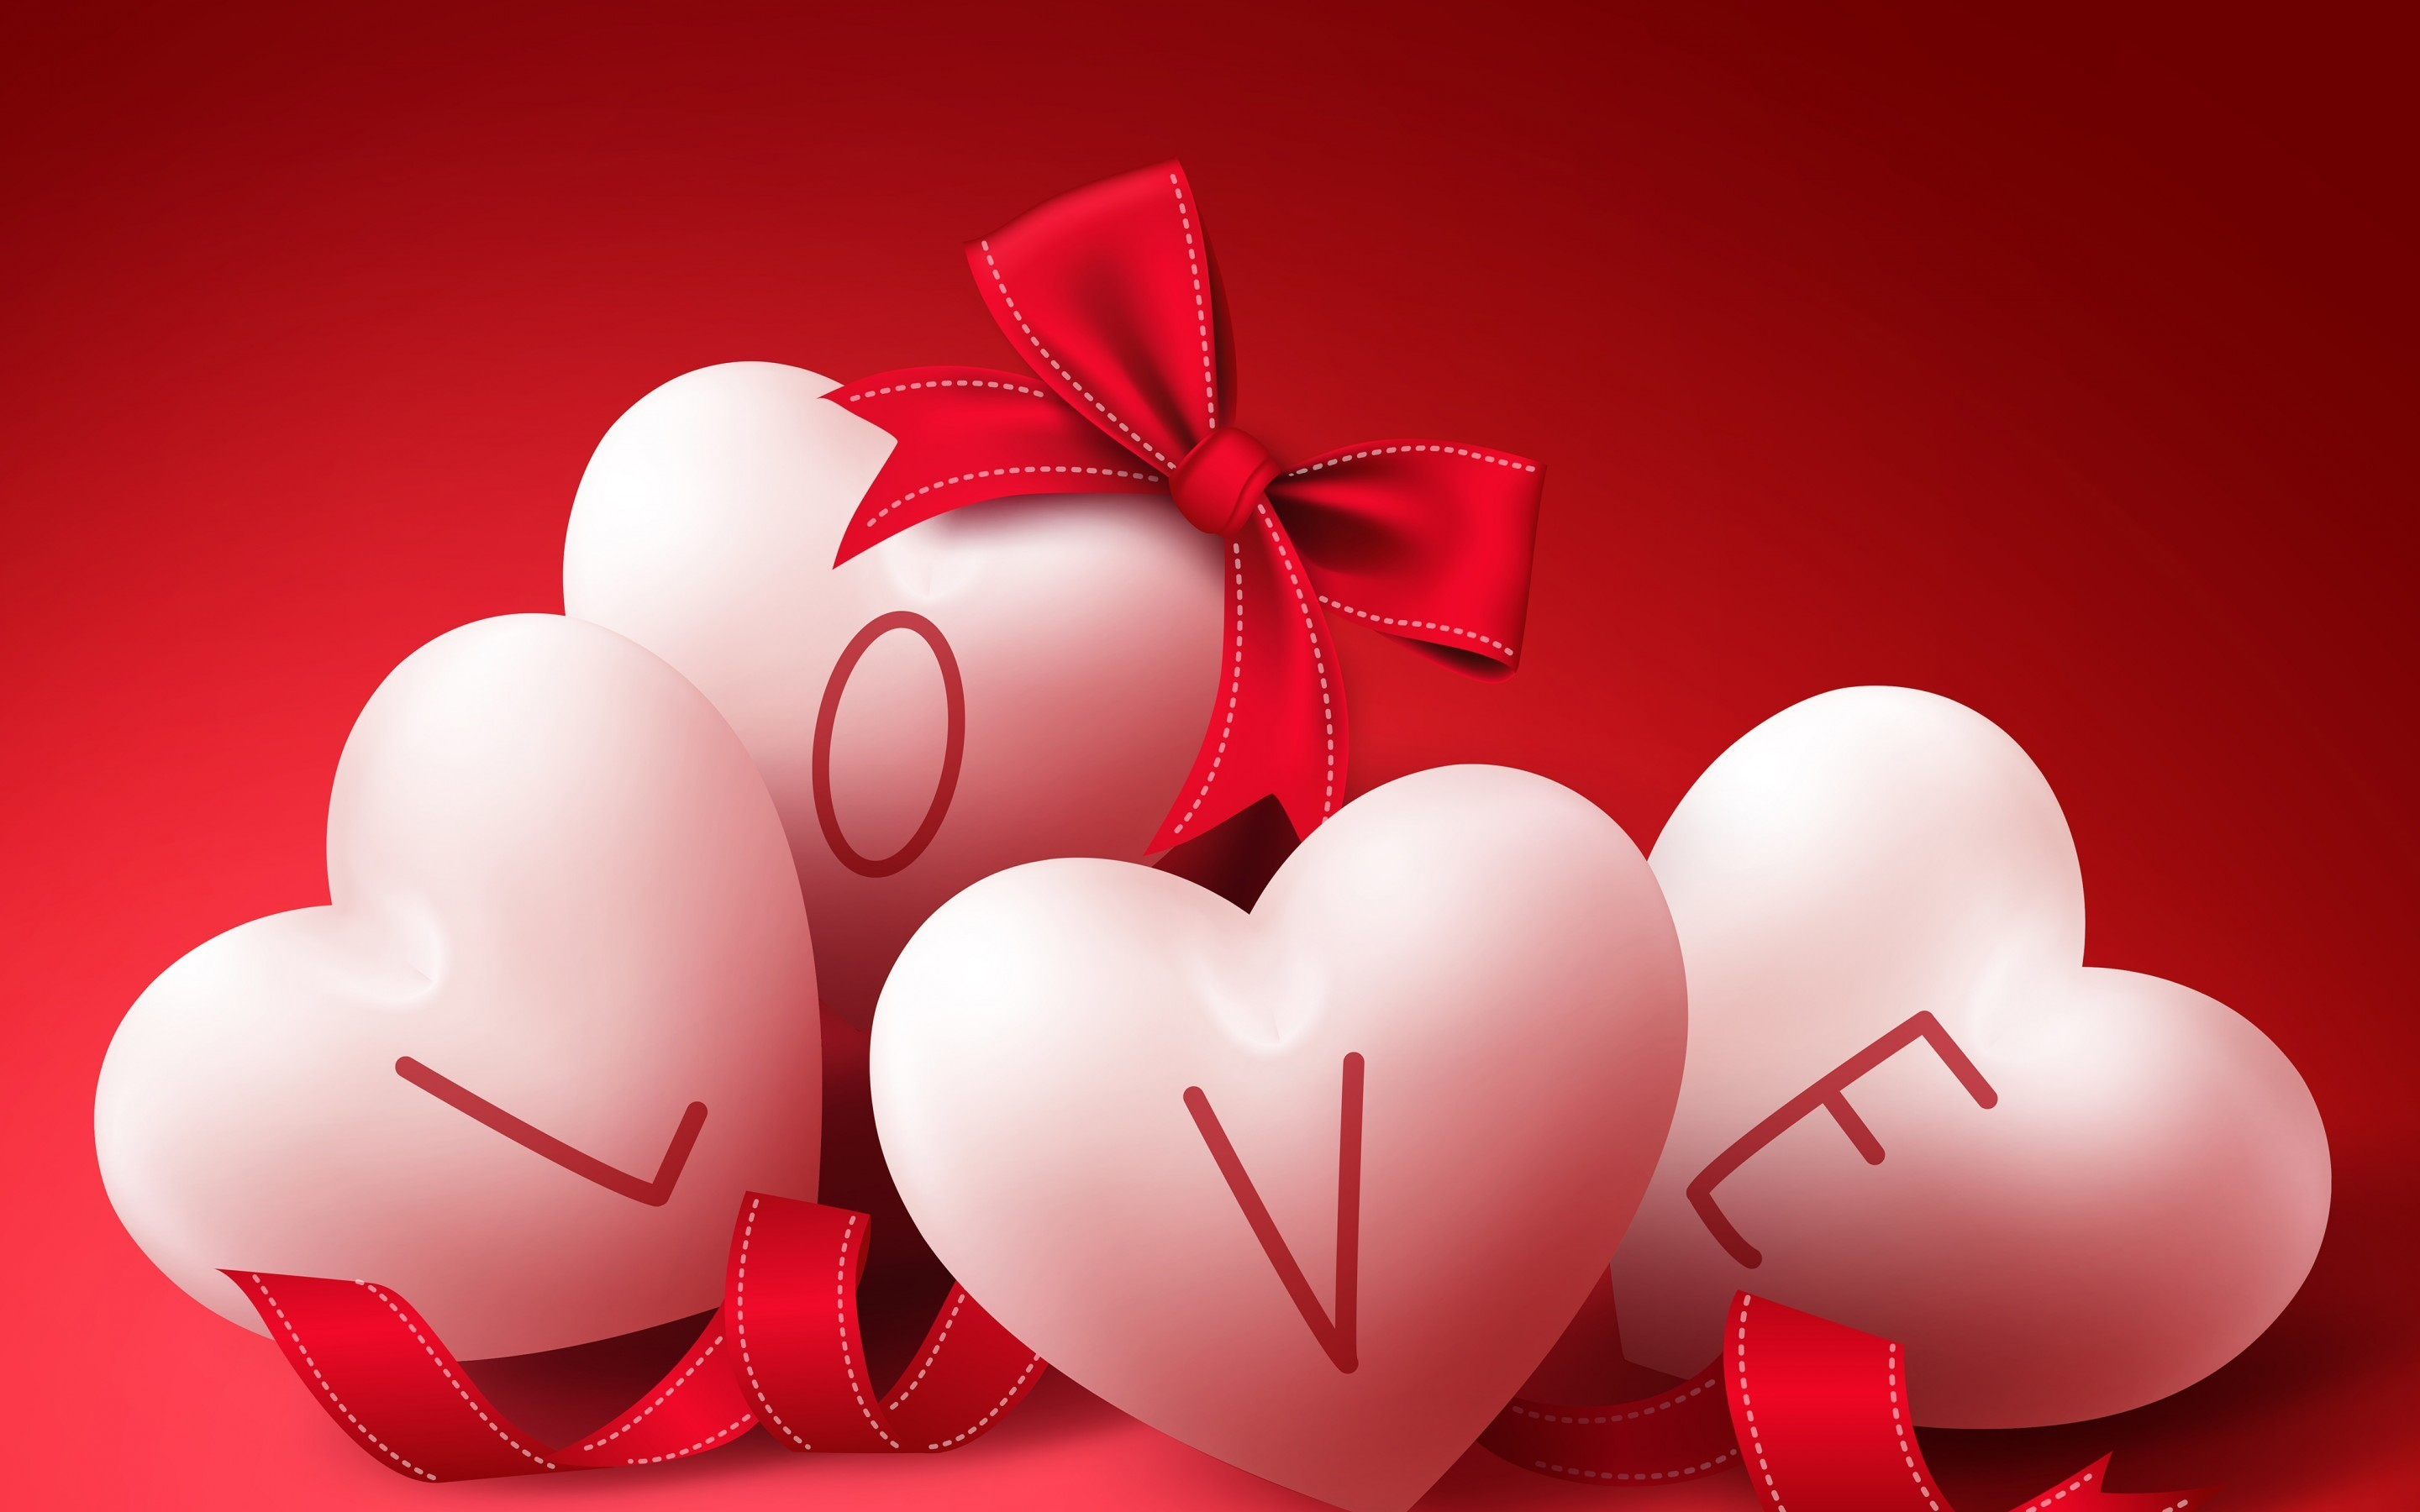 2880x1800  hearts wallpaper - Selo.l-ink.co · Download · love heart wallpaper  ...